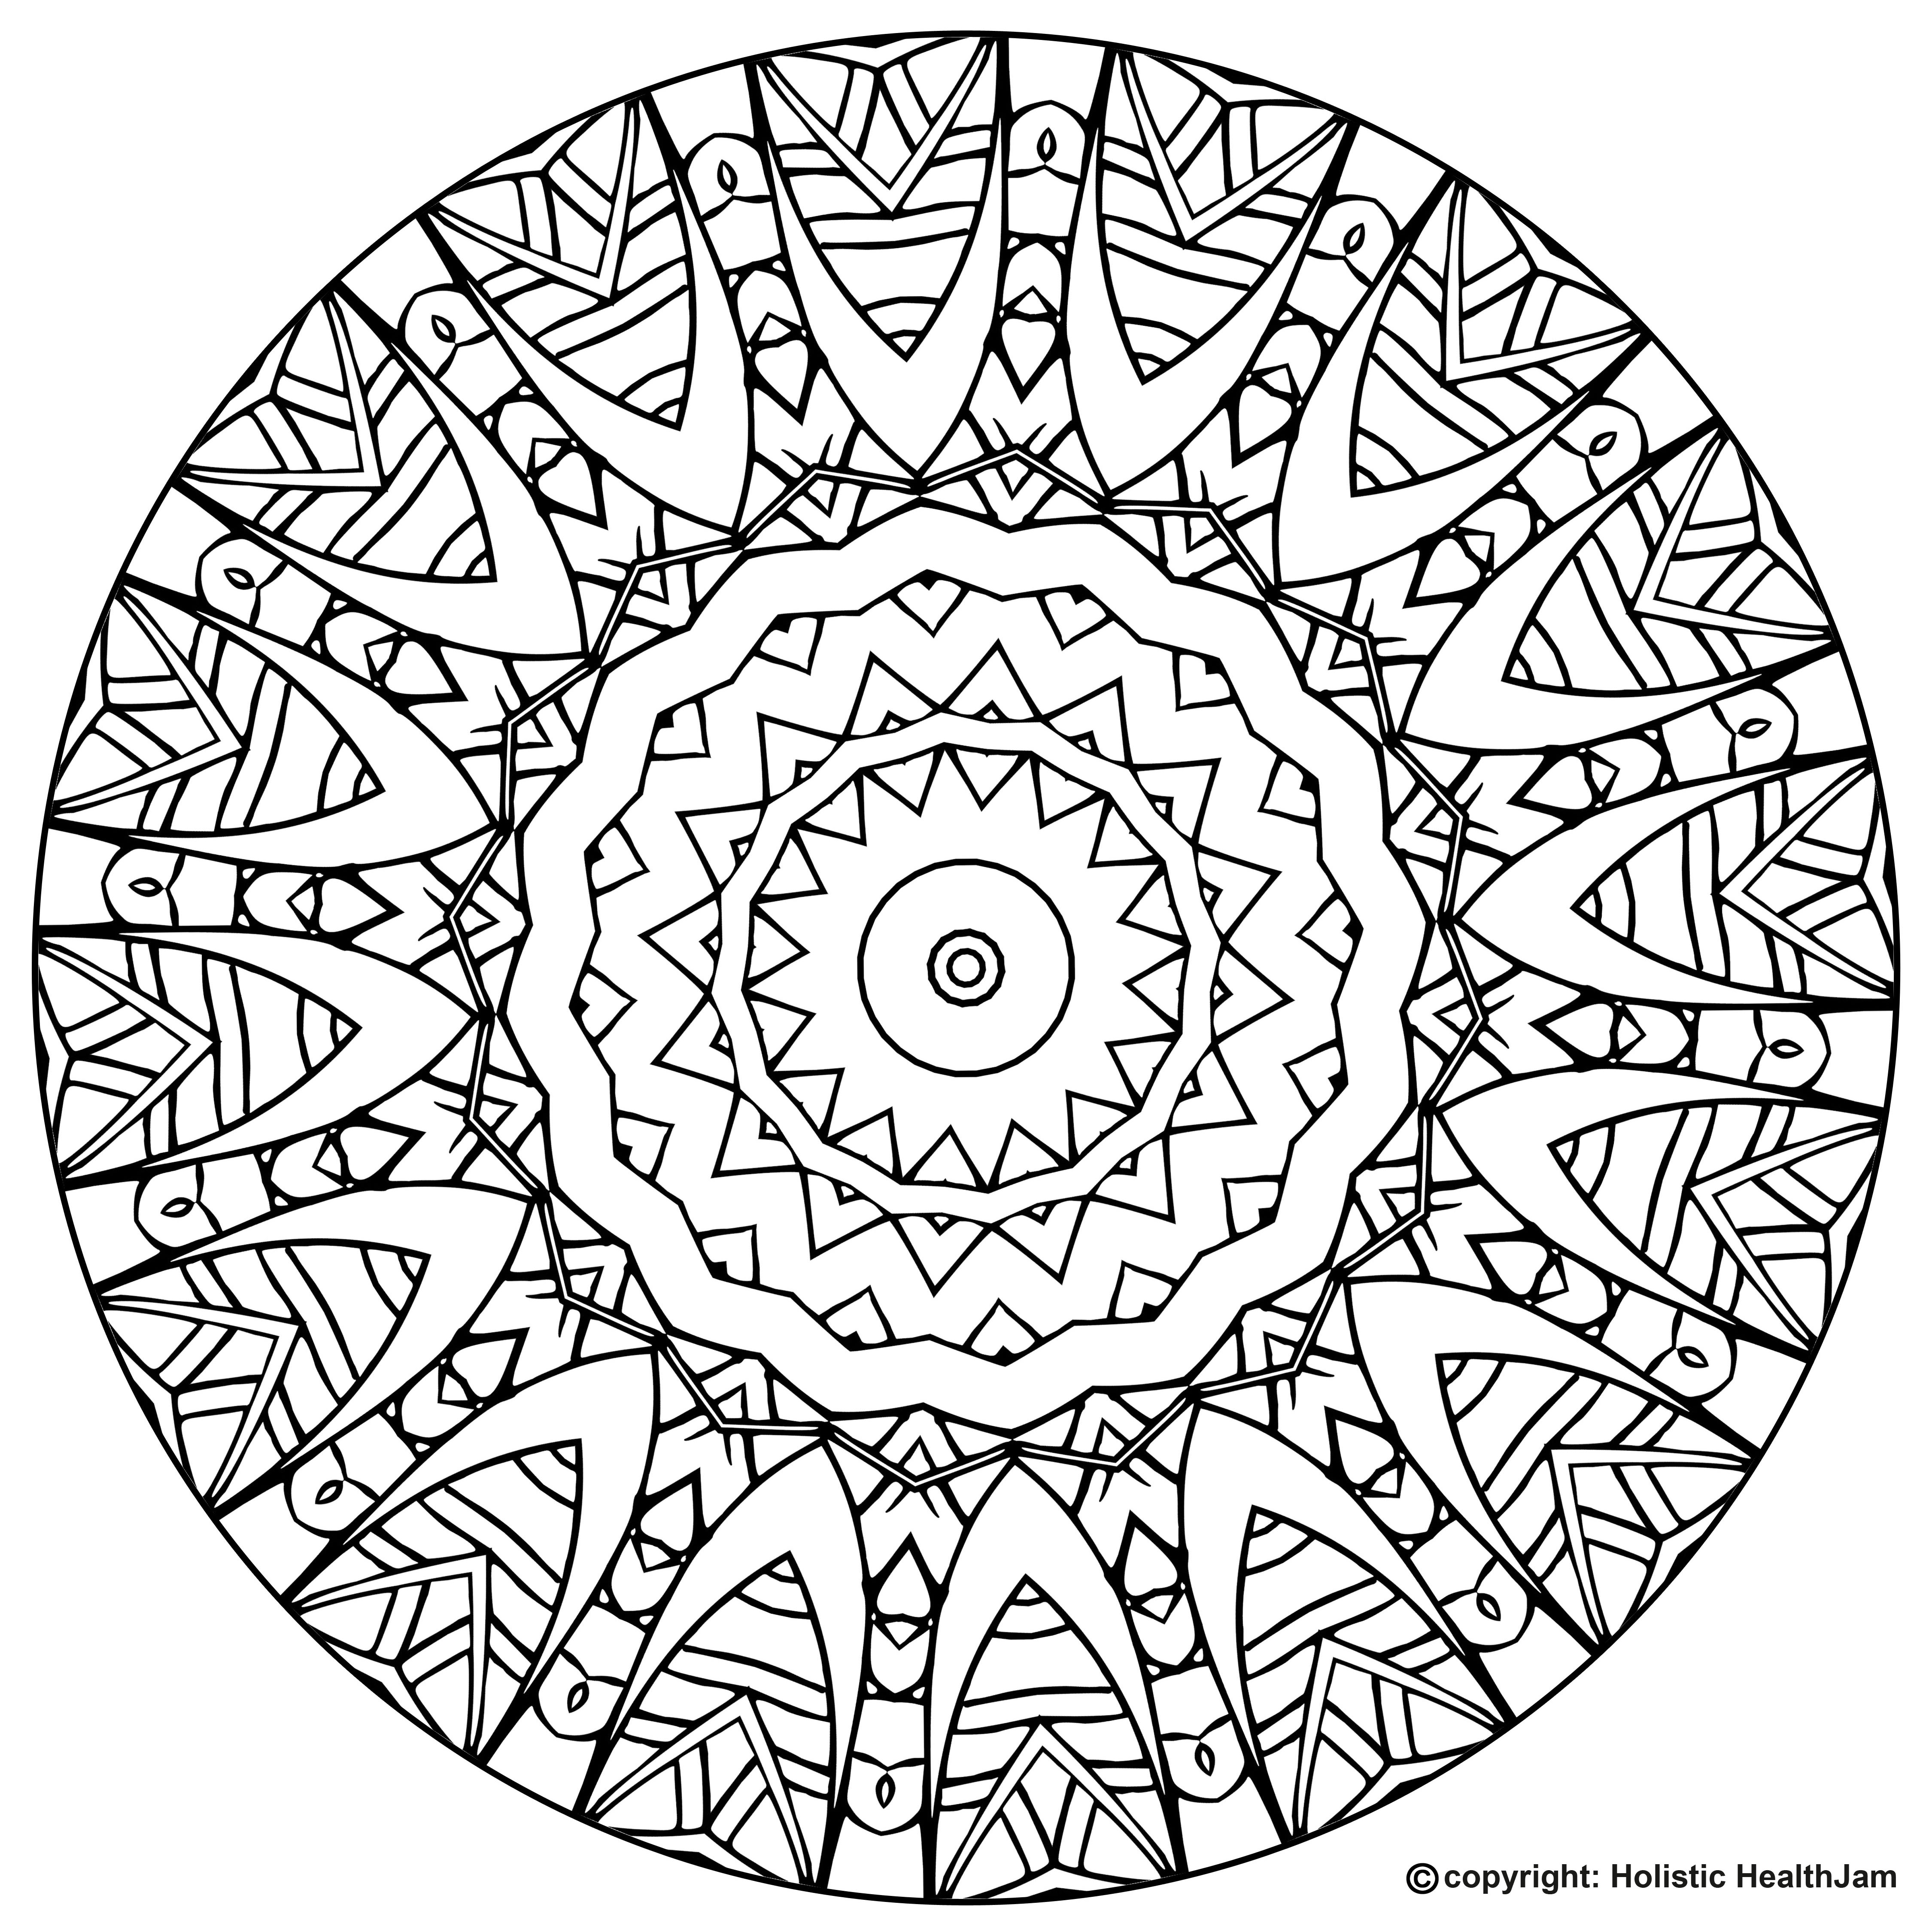 printable mandalas to color simple floral mandala mandalas adult coloring pages mandalas printable to color